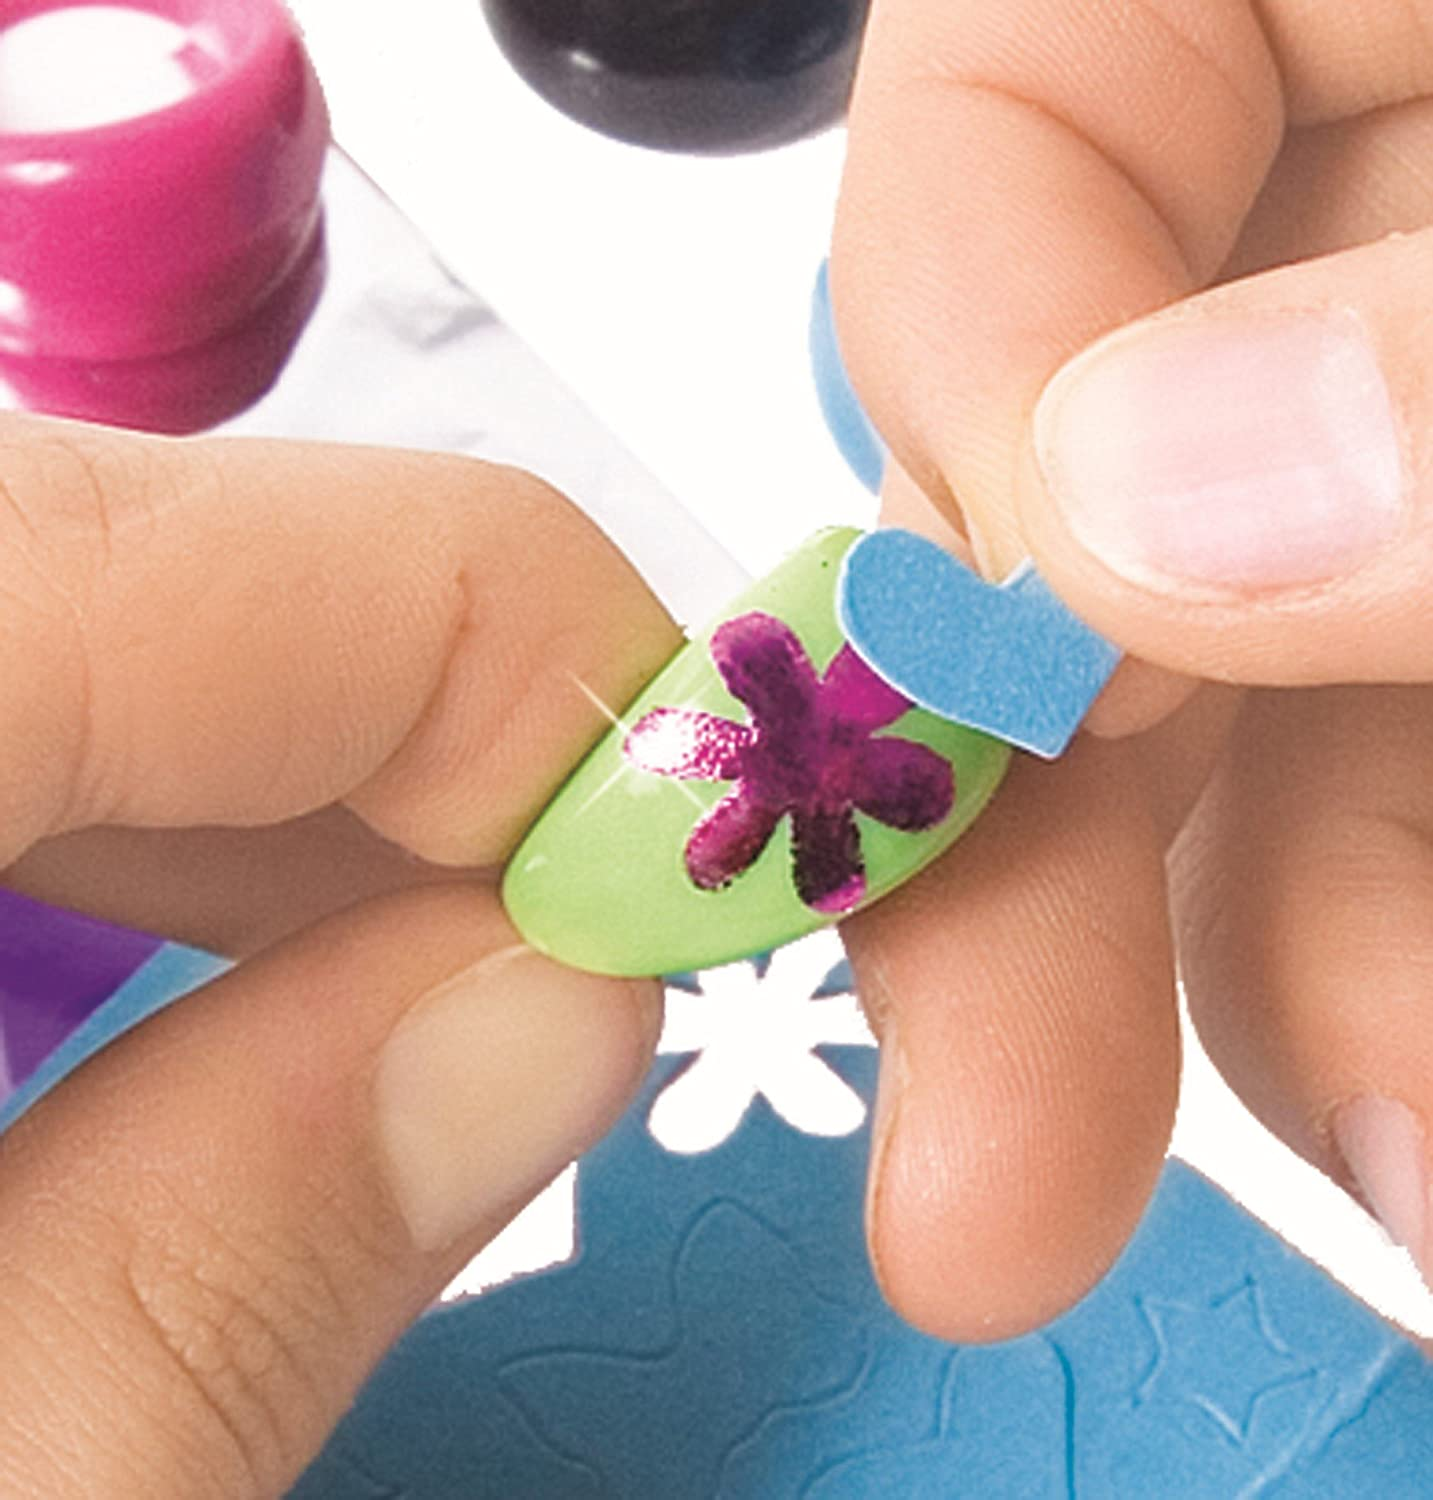 DIY Ring Making Kit for Kids Jewelry Making Set for Girls SMU-401 Creative Crafts for Girls Style Me Up!